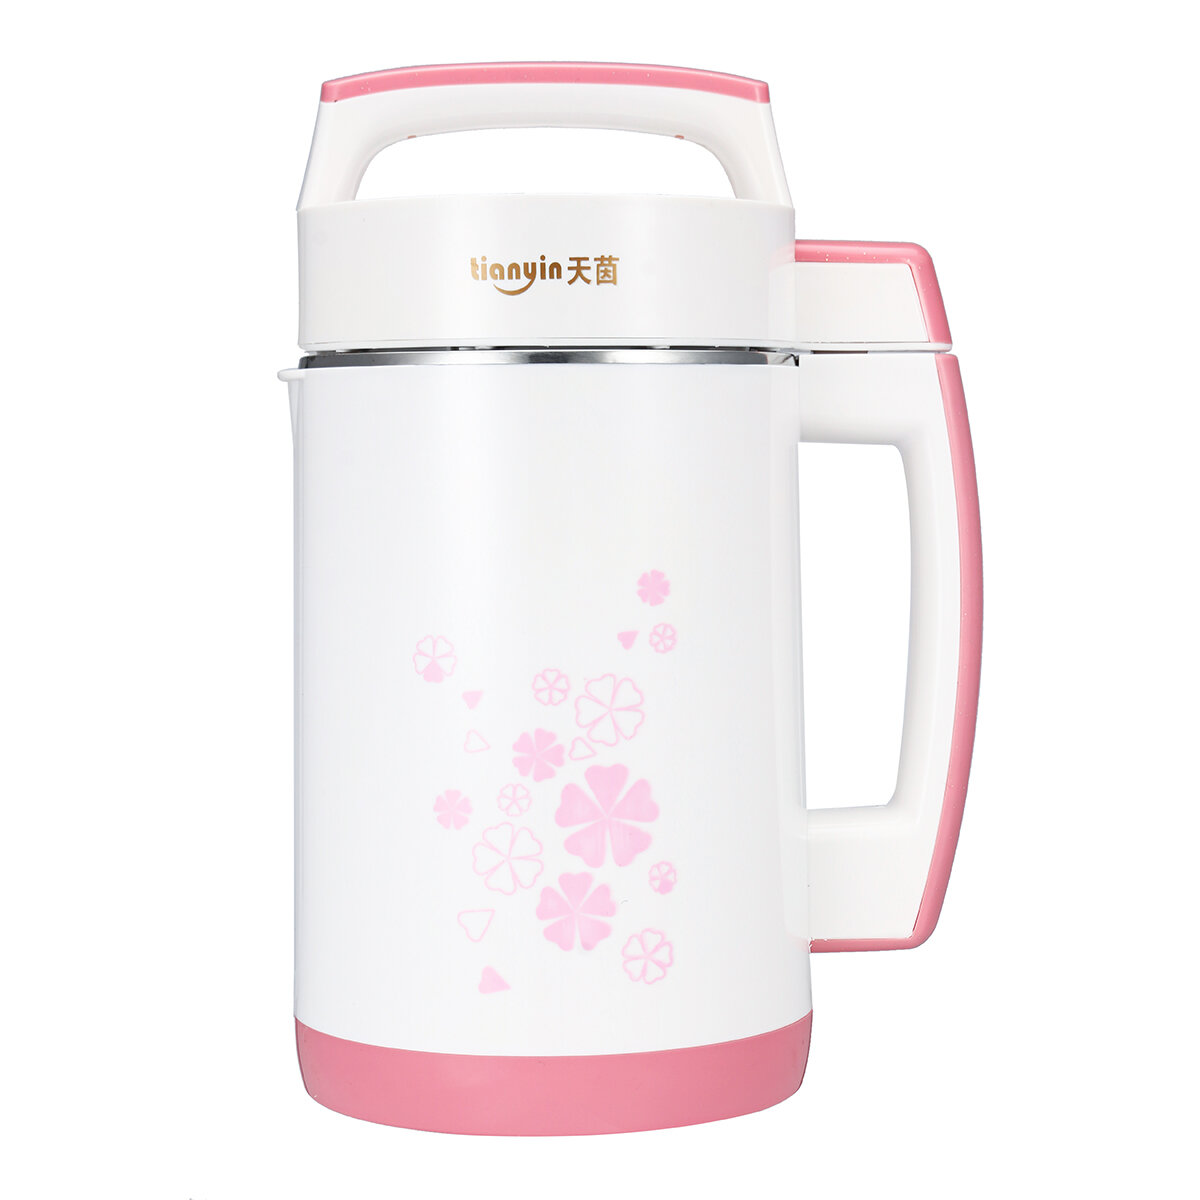 Tianyin Soy Milk Maker Soybean Cereal Soup Vegetable Juicer Rice Paste Machine Bean Blender 2L 800W